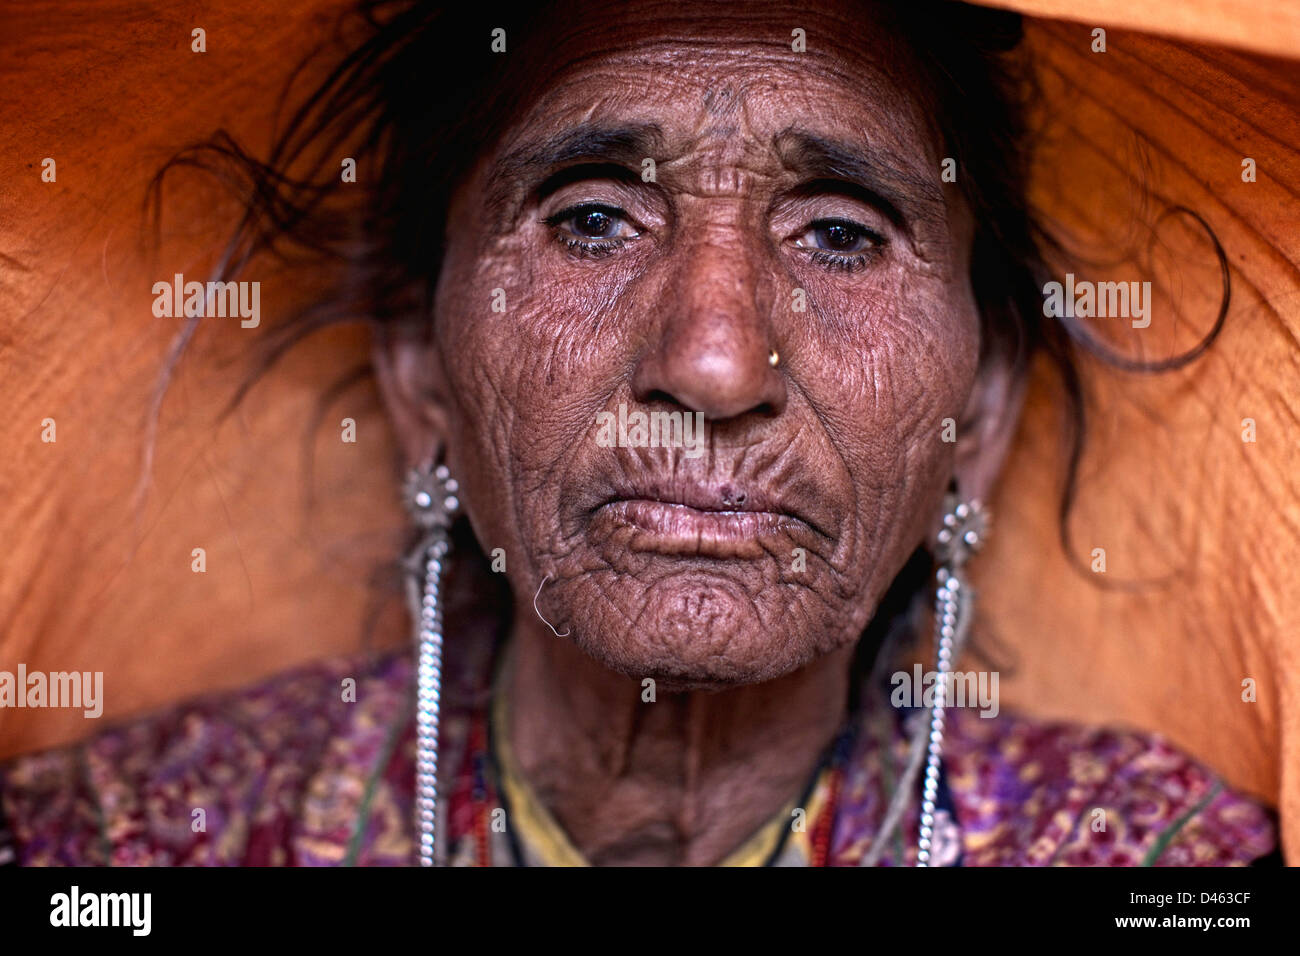 Old woman from Gujarat,India. - Stock Image